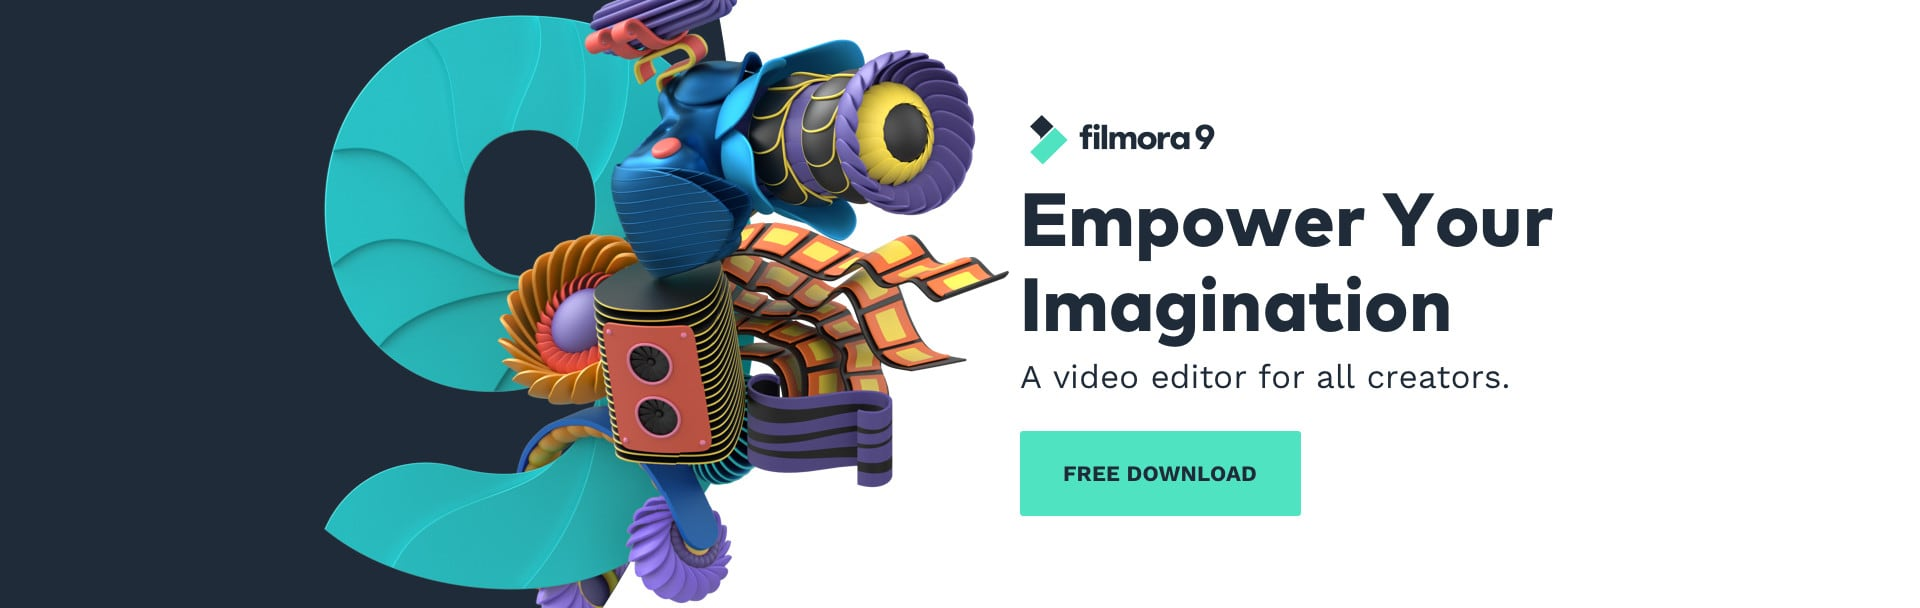 Filmora 9 is a video editor with professional capabilities, aimed at users of all skill levels.